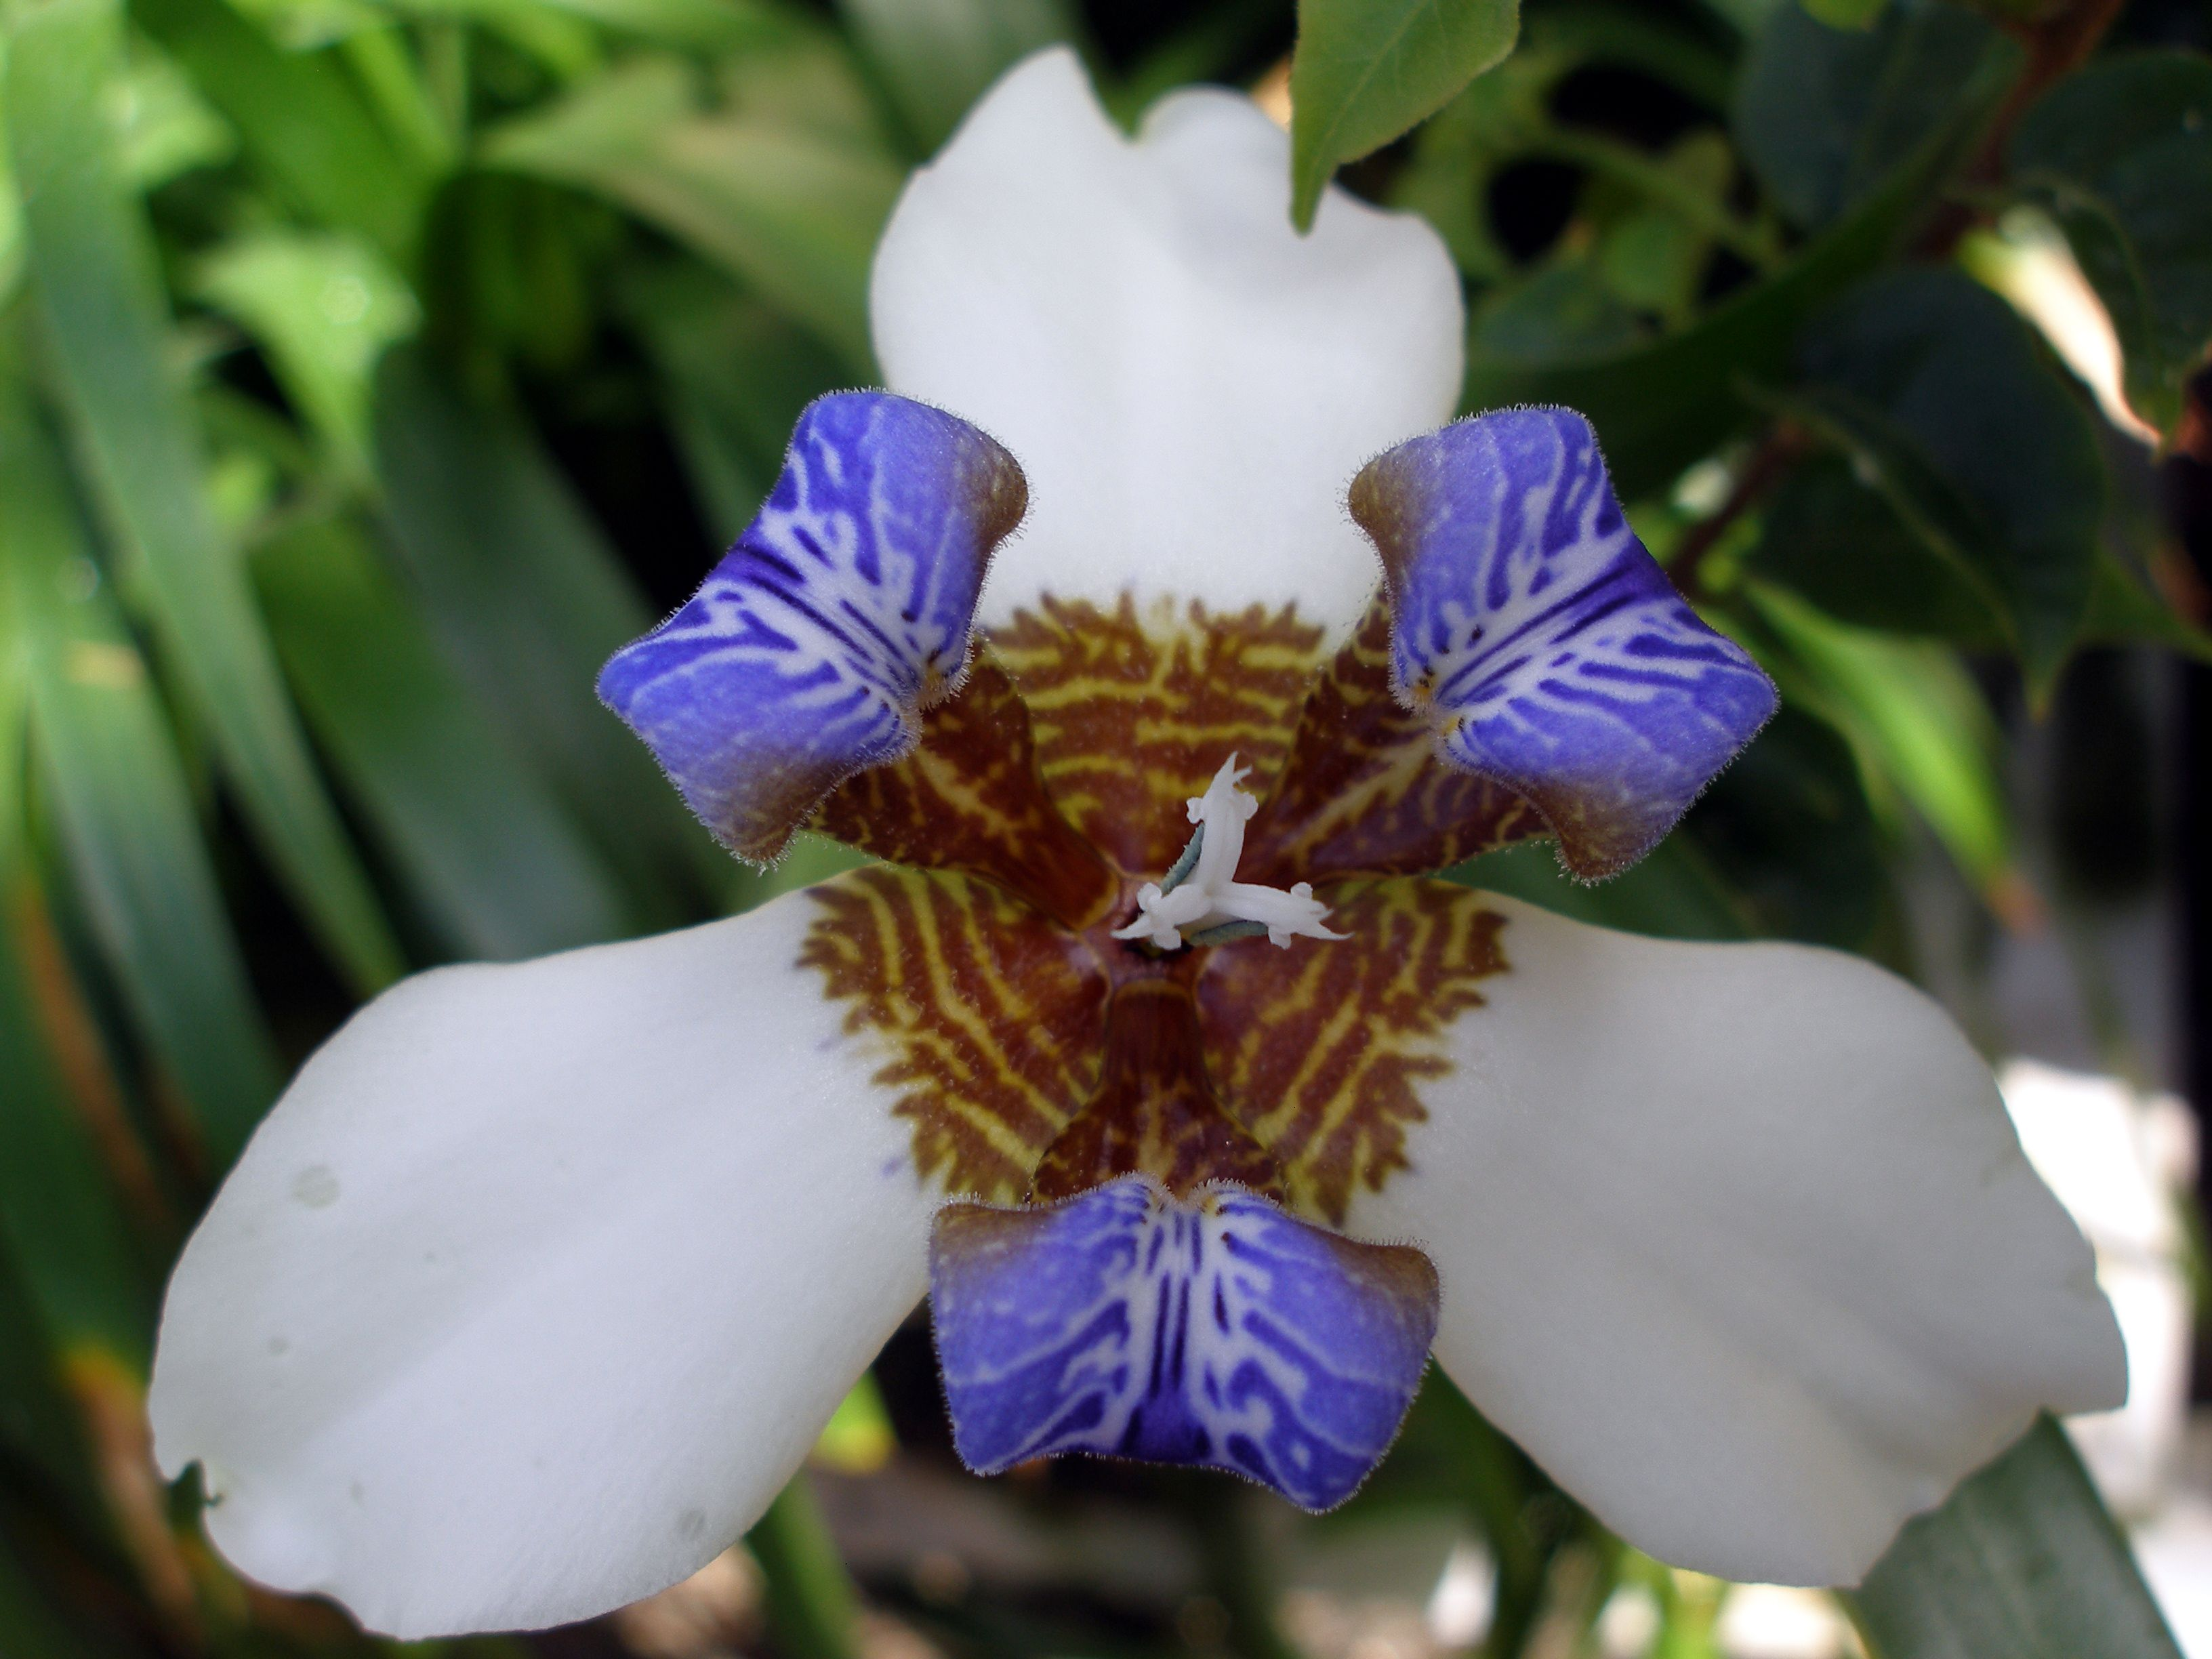 Walking iris neomarica northiana family iridaceae p garden walking iris neomarica northiana family iridaceae propagates by thick rhizome and the plantlets that develop from stem where flowers once emerged izmirmasajfo